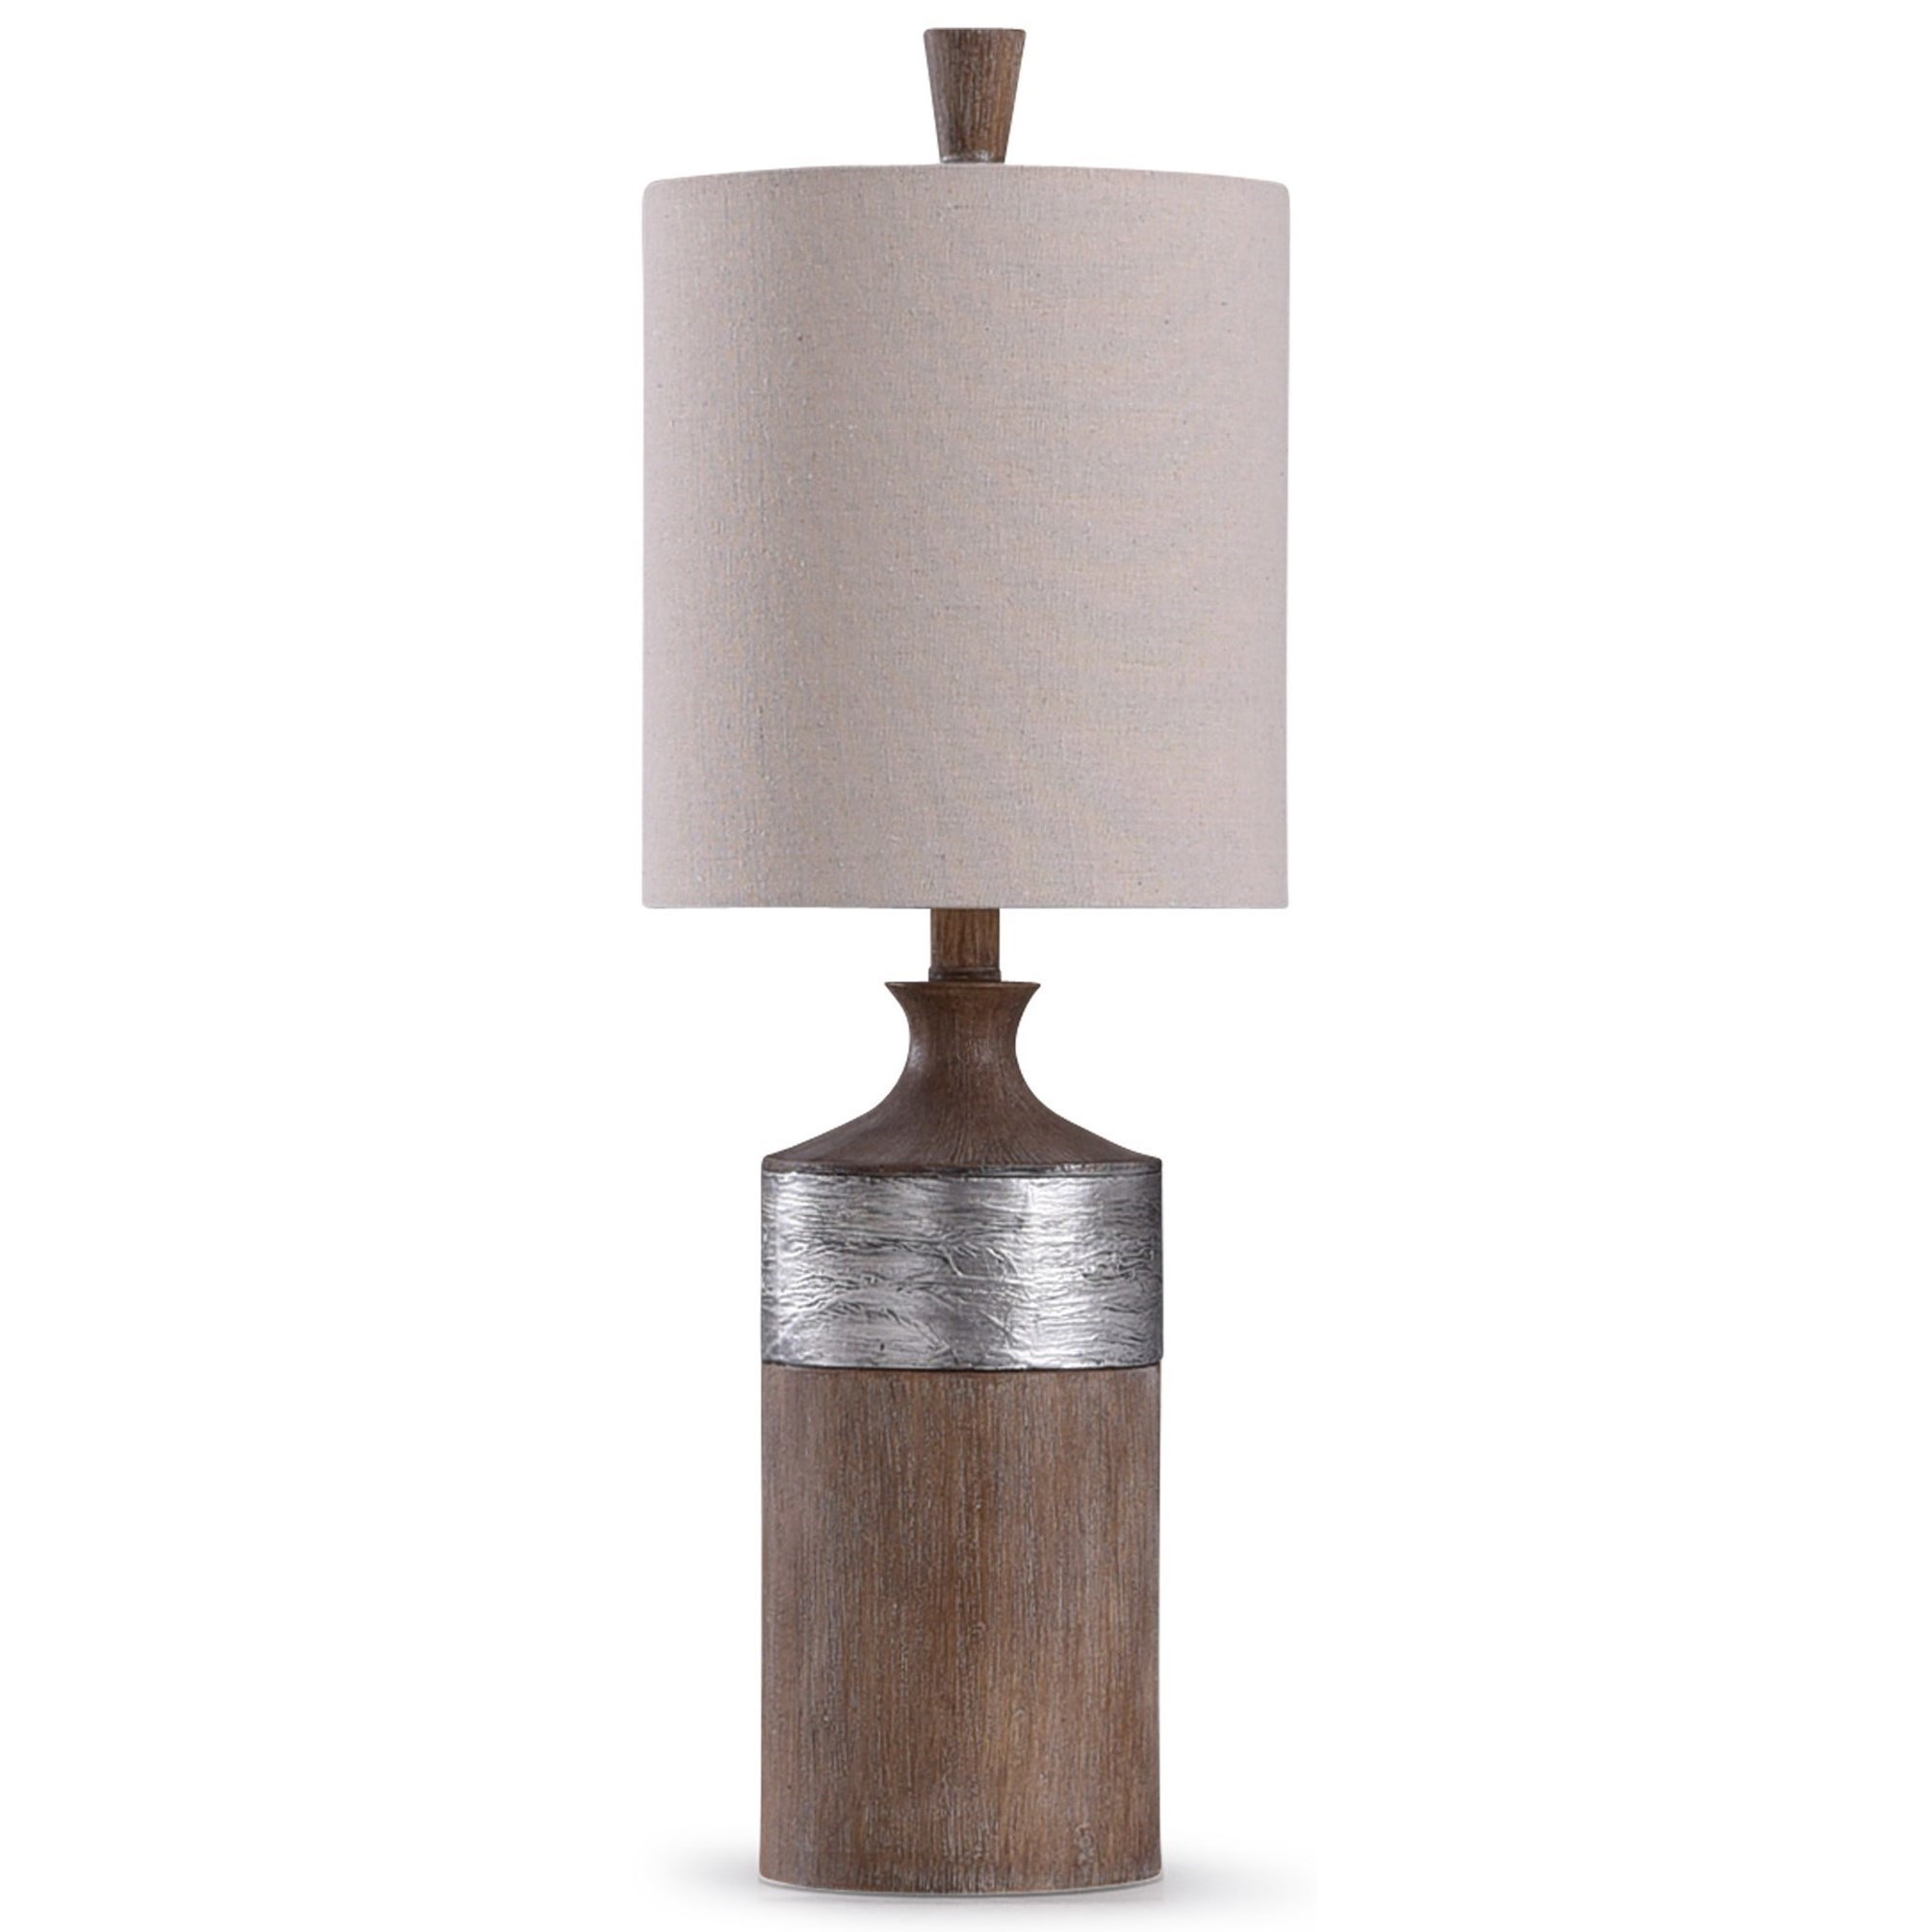 Lamps Darley Table Lamp by StyleCraft at Becker Furniture